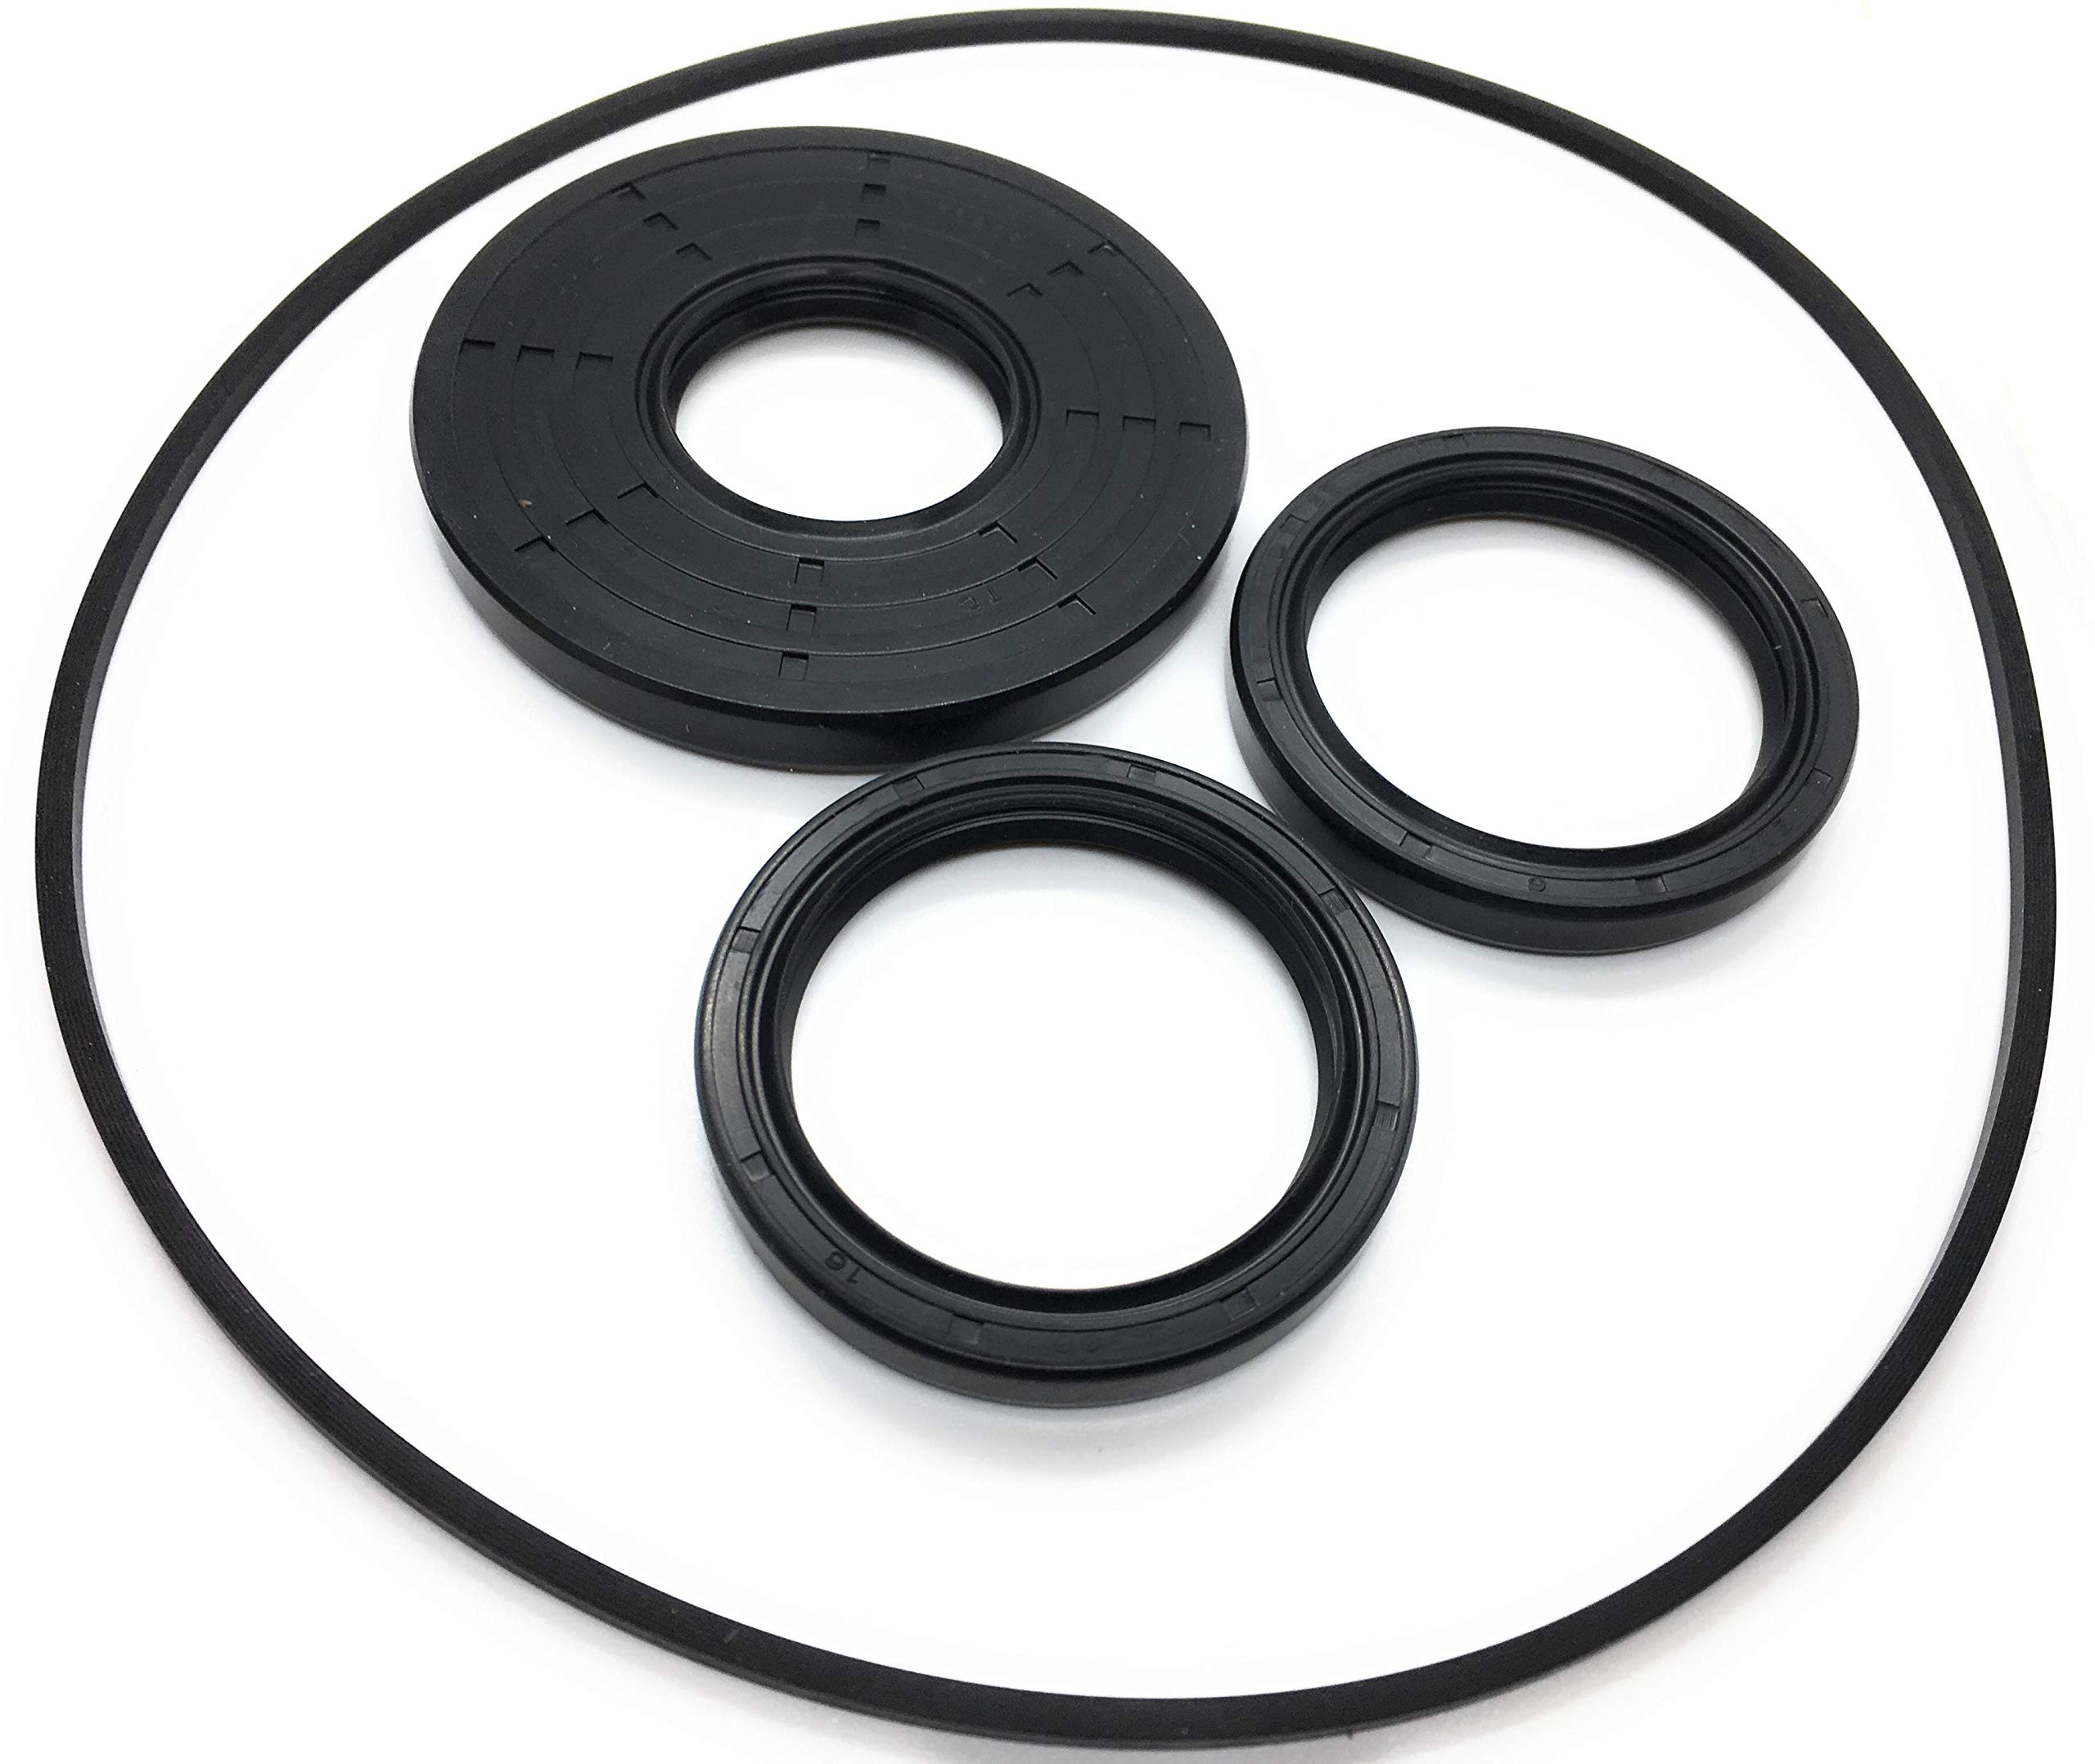 REPLACEMENTKITS.COM Brand Front Differential Seal Kit Fits 2017-2019 Polaris 900 1000 RZR RANGER GENERAL Replaces 3236047 by REPLACEMENTKITS.COM